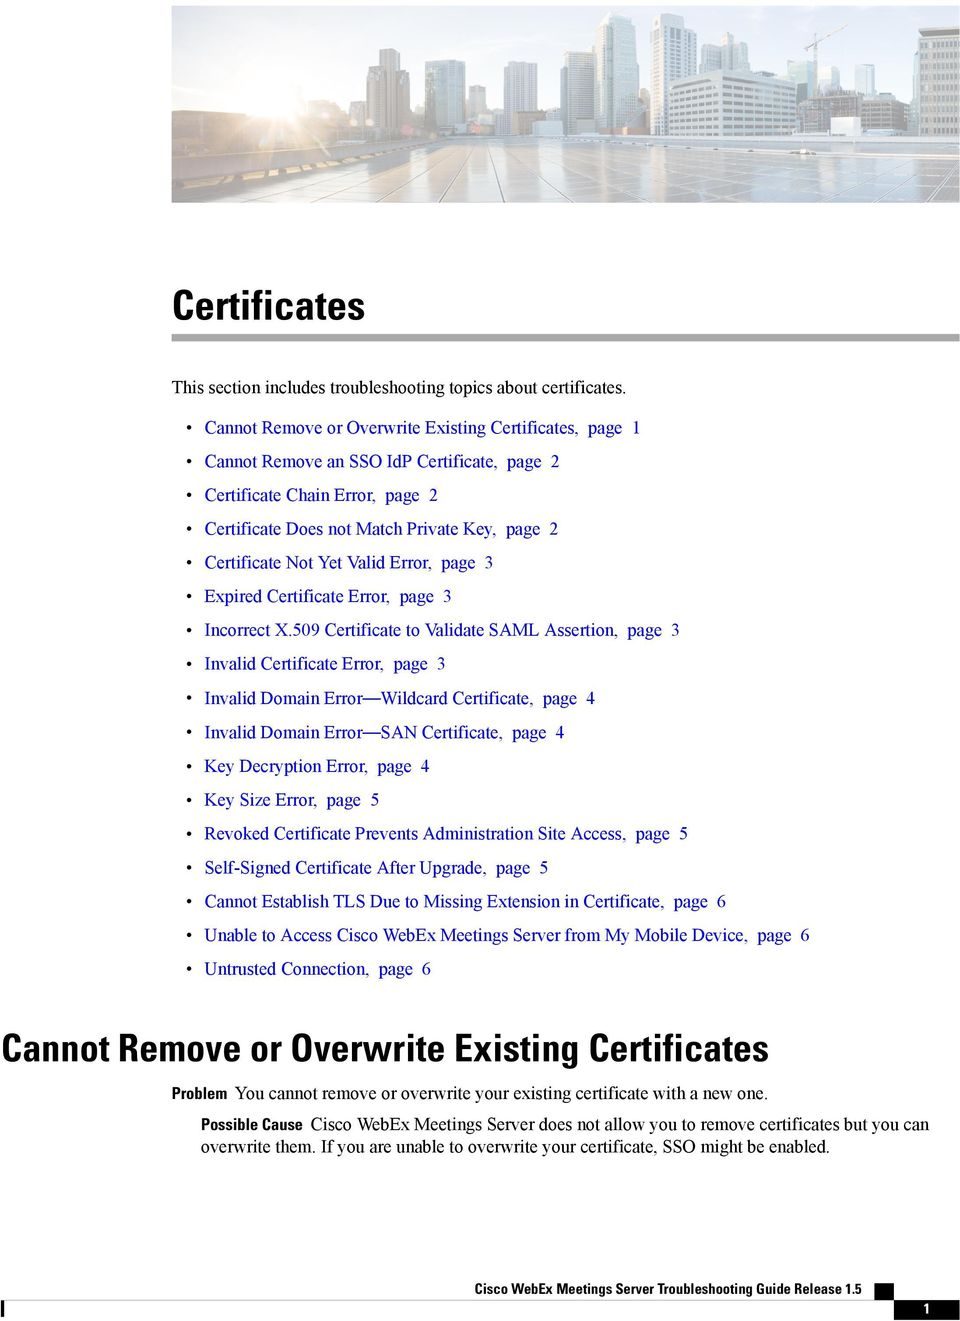 This Section Includes Troubleshooting Topics About Certificates Pdf